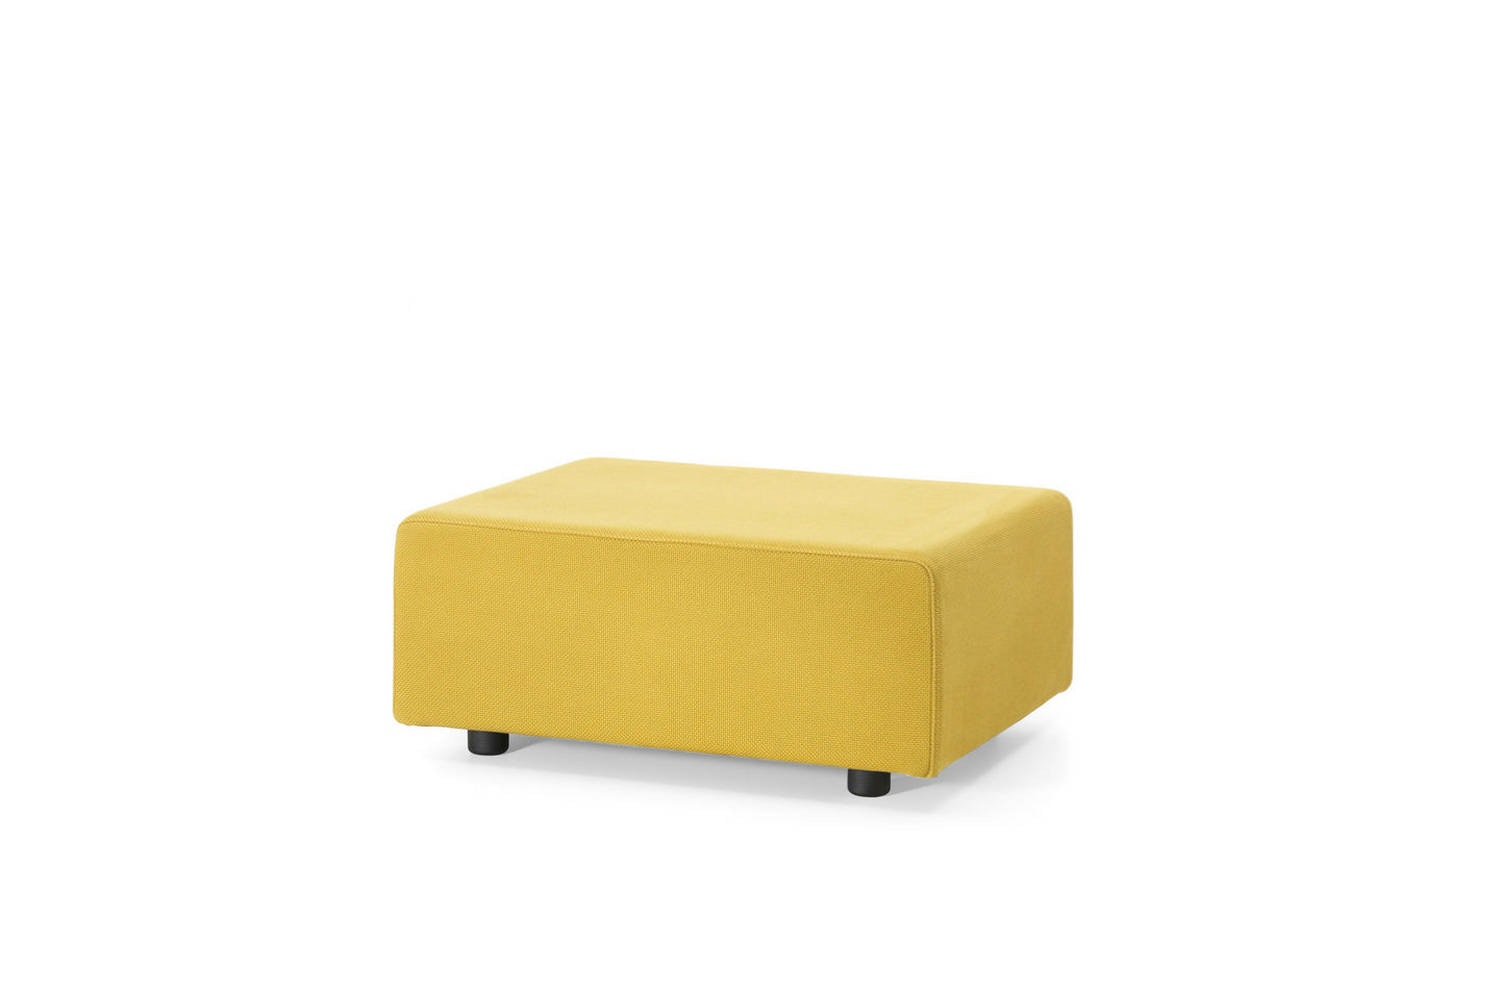 Polder Ottoman by Hella Jongerius for Vitra